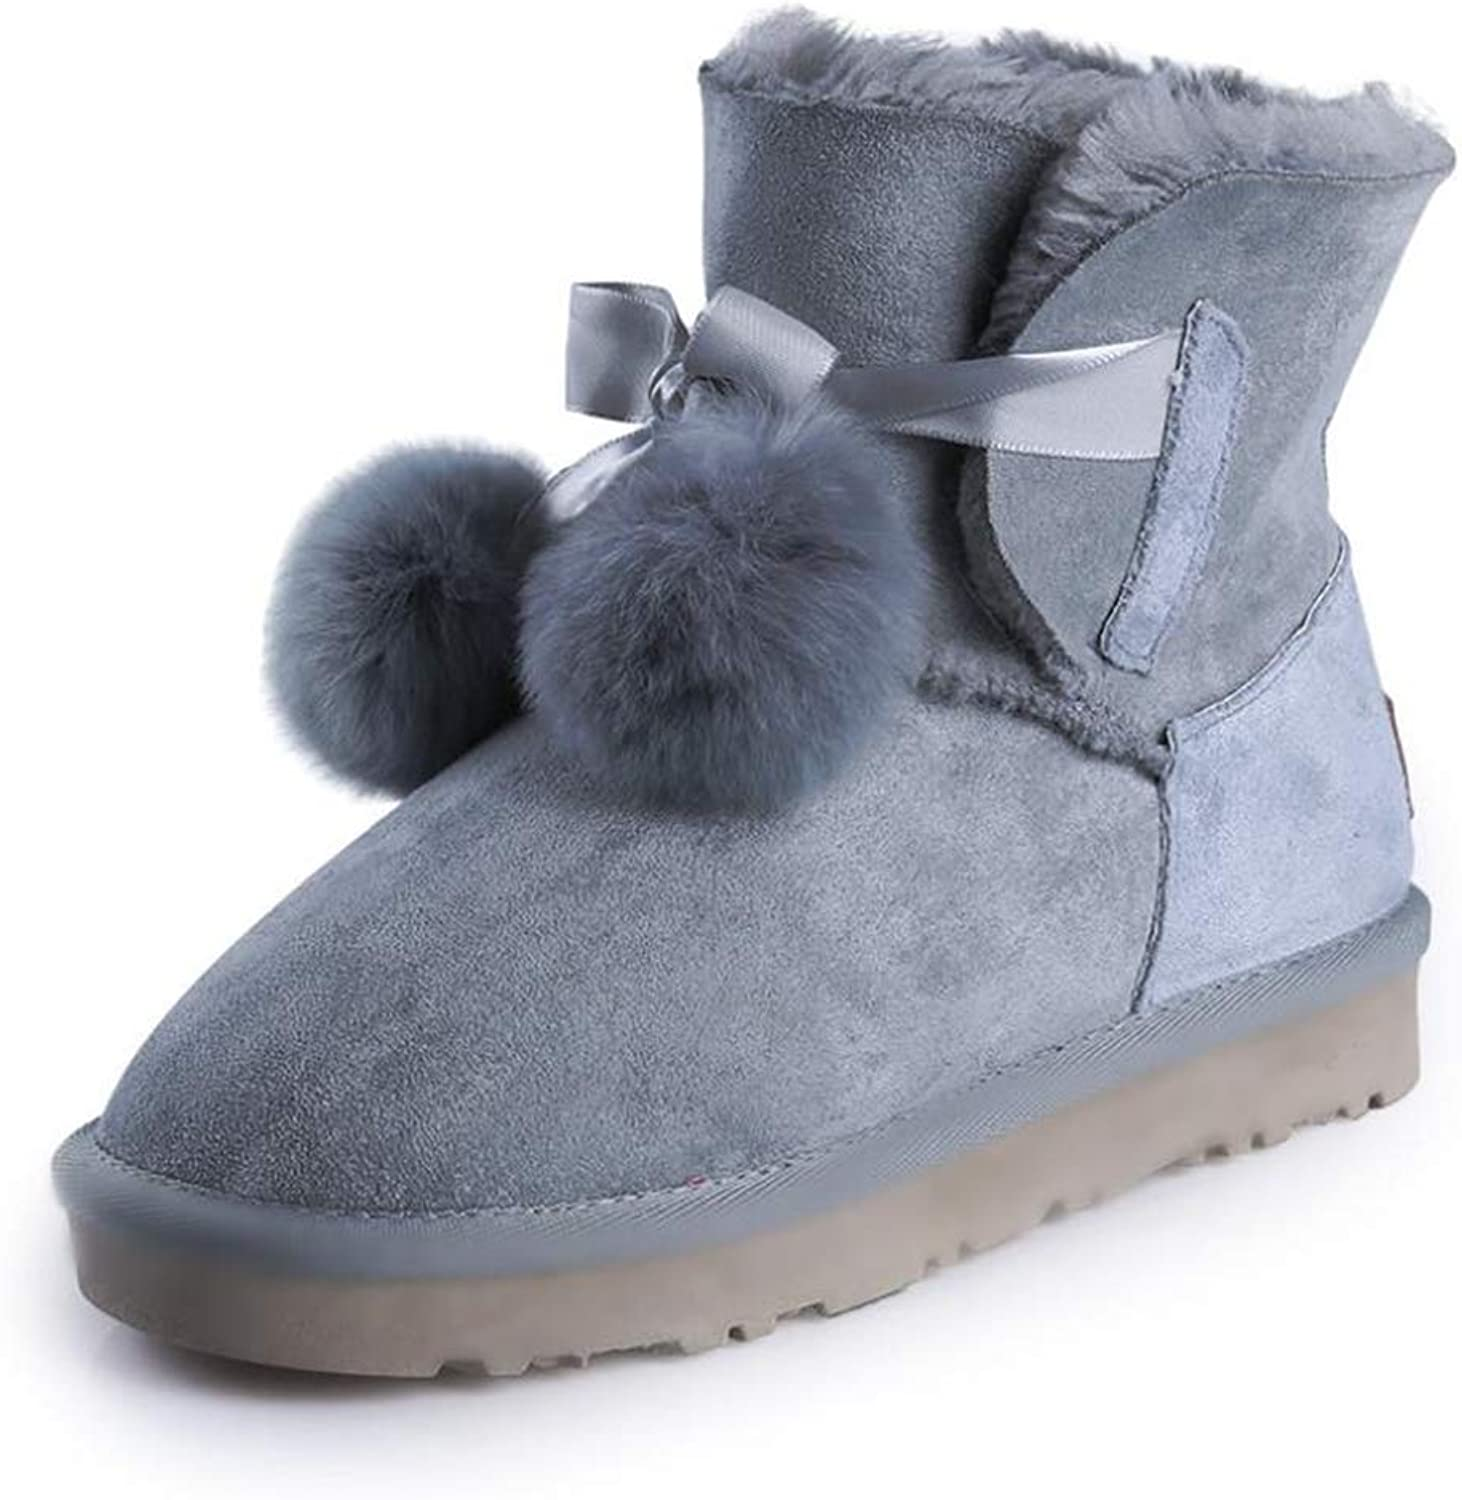 Super frist Women's Casual Booties Plus Velvet Student Boots Snow Boots with Pompom to Break The Monotony